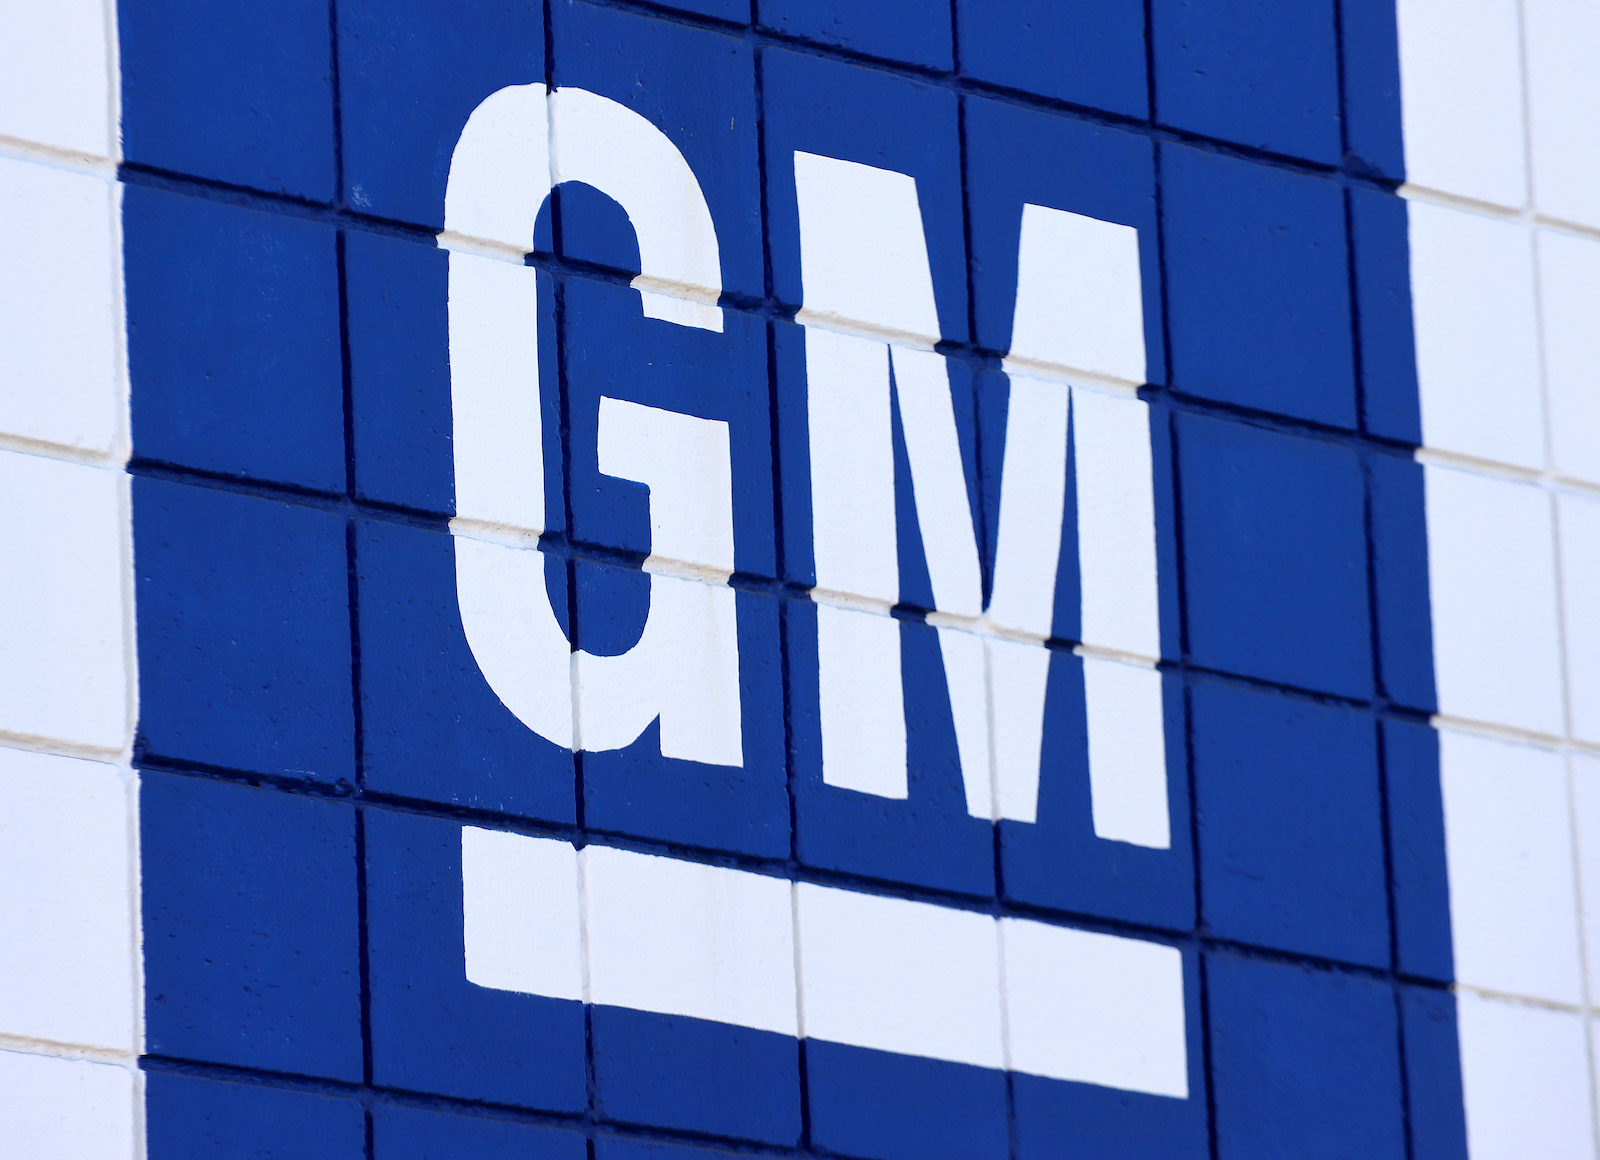 BURBANK, CALIFORNIA - AUGUST 04: The General Motors logo is displayed at a Chevrolet dealership on August 4, 2021 in Burbank, California. In spite of a computer chip shortage, General Motors (GM) posted a $2.8 billion net profit in the second quarter. (Photo by Mario Tama/Getty Images)